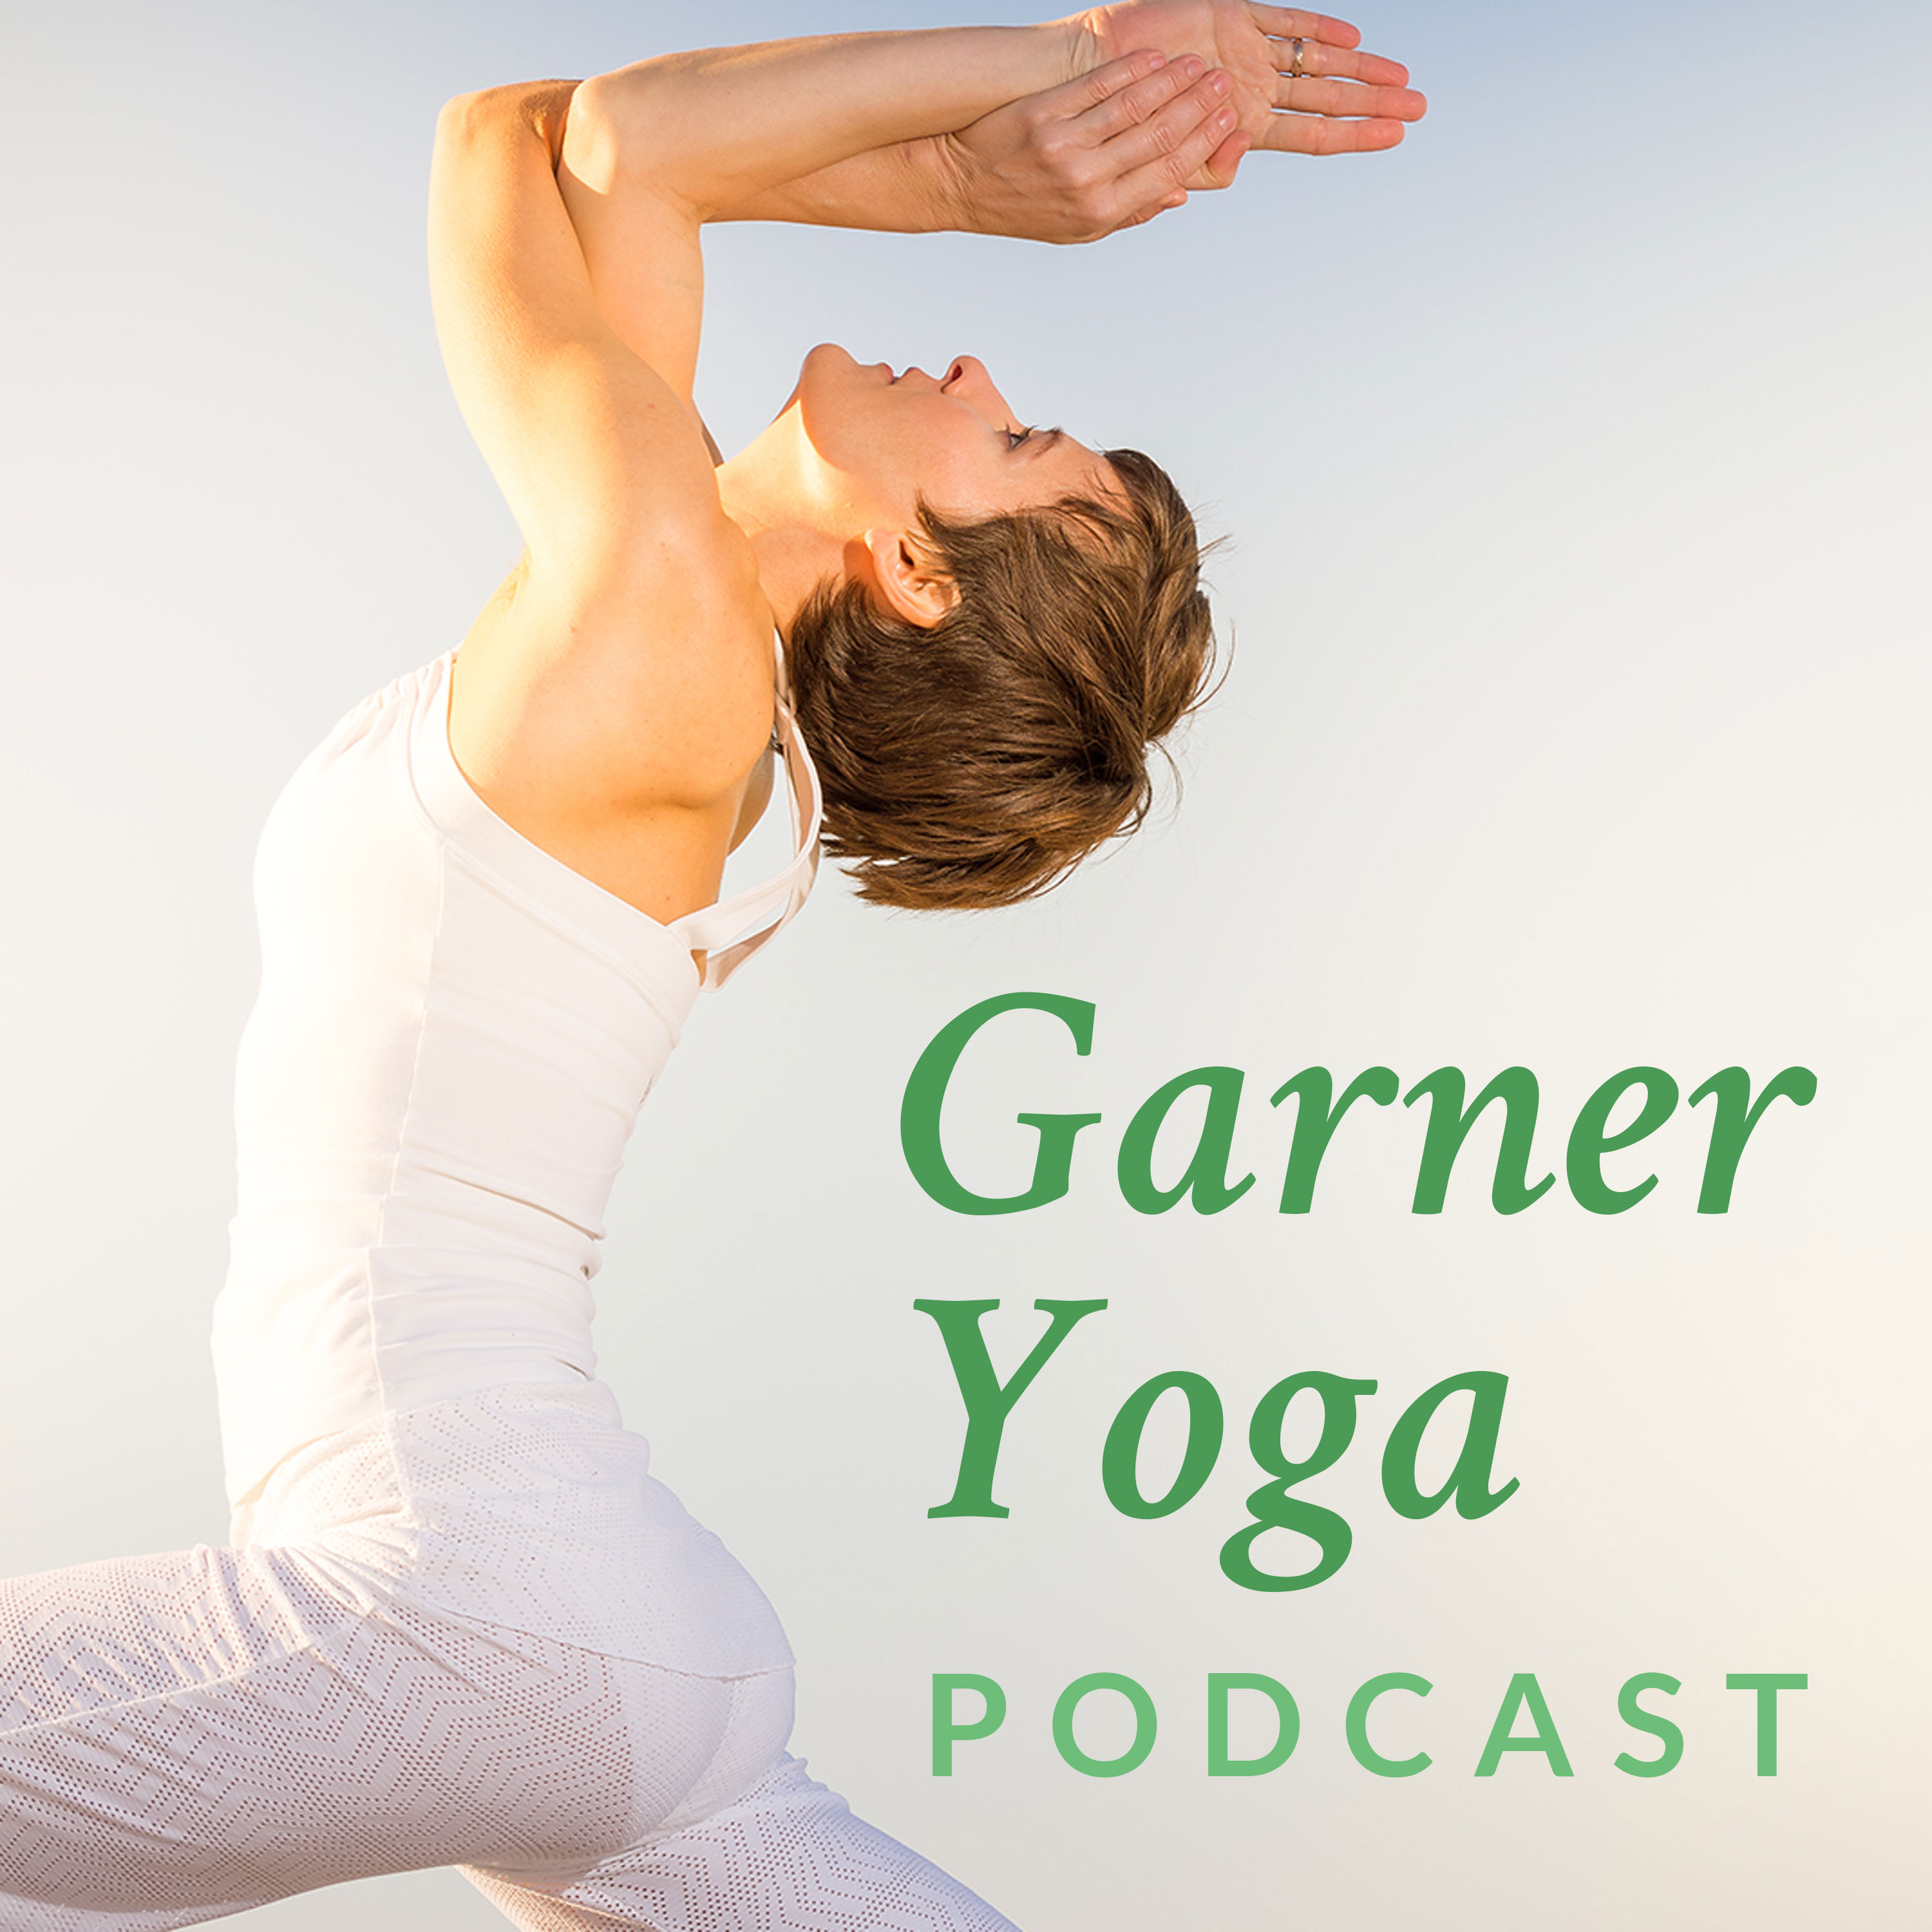 Garner Yoga Podcasts